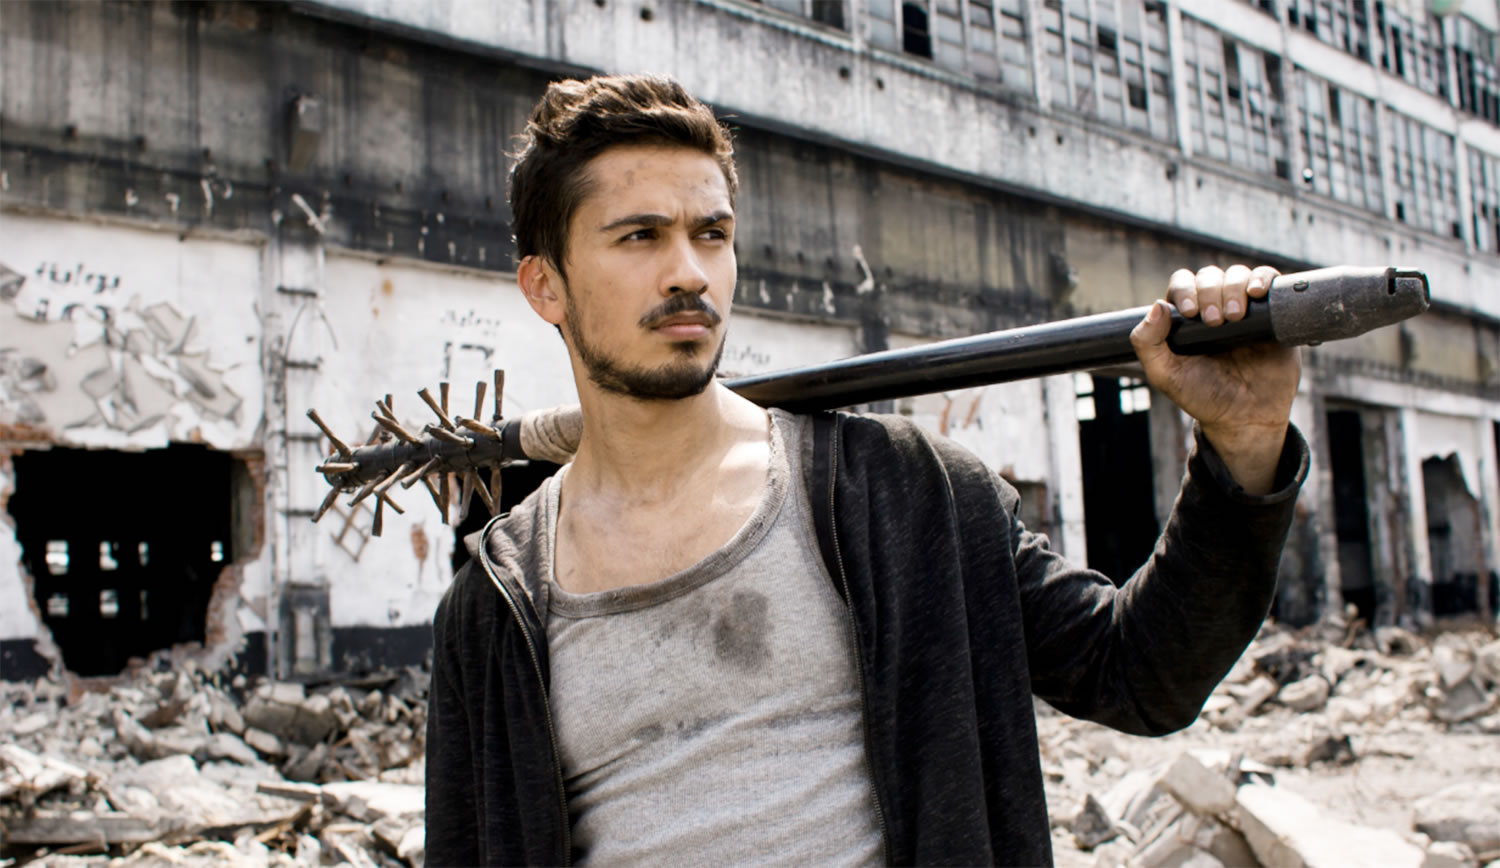 Post-Apocalyptic Movies - The Worthy, Ali F. Mostafa, baseball bat